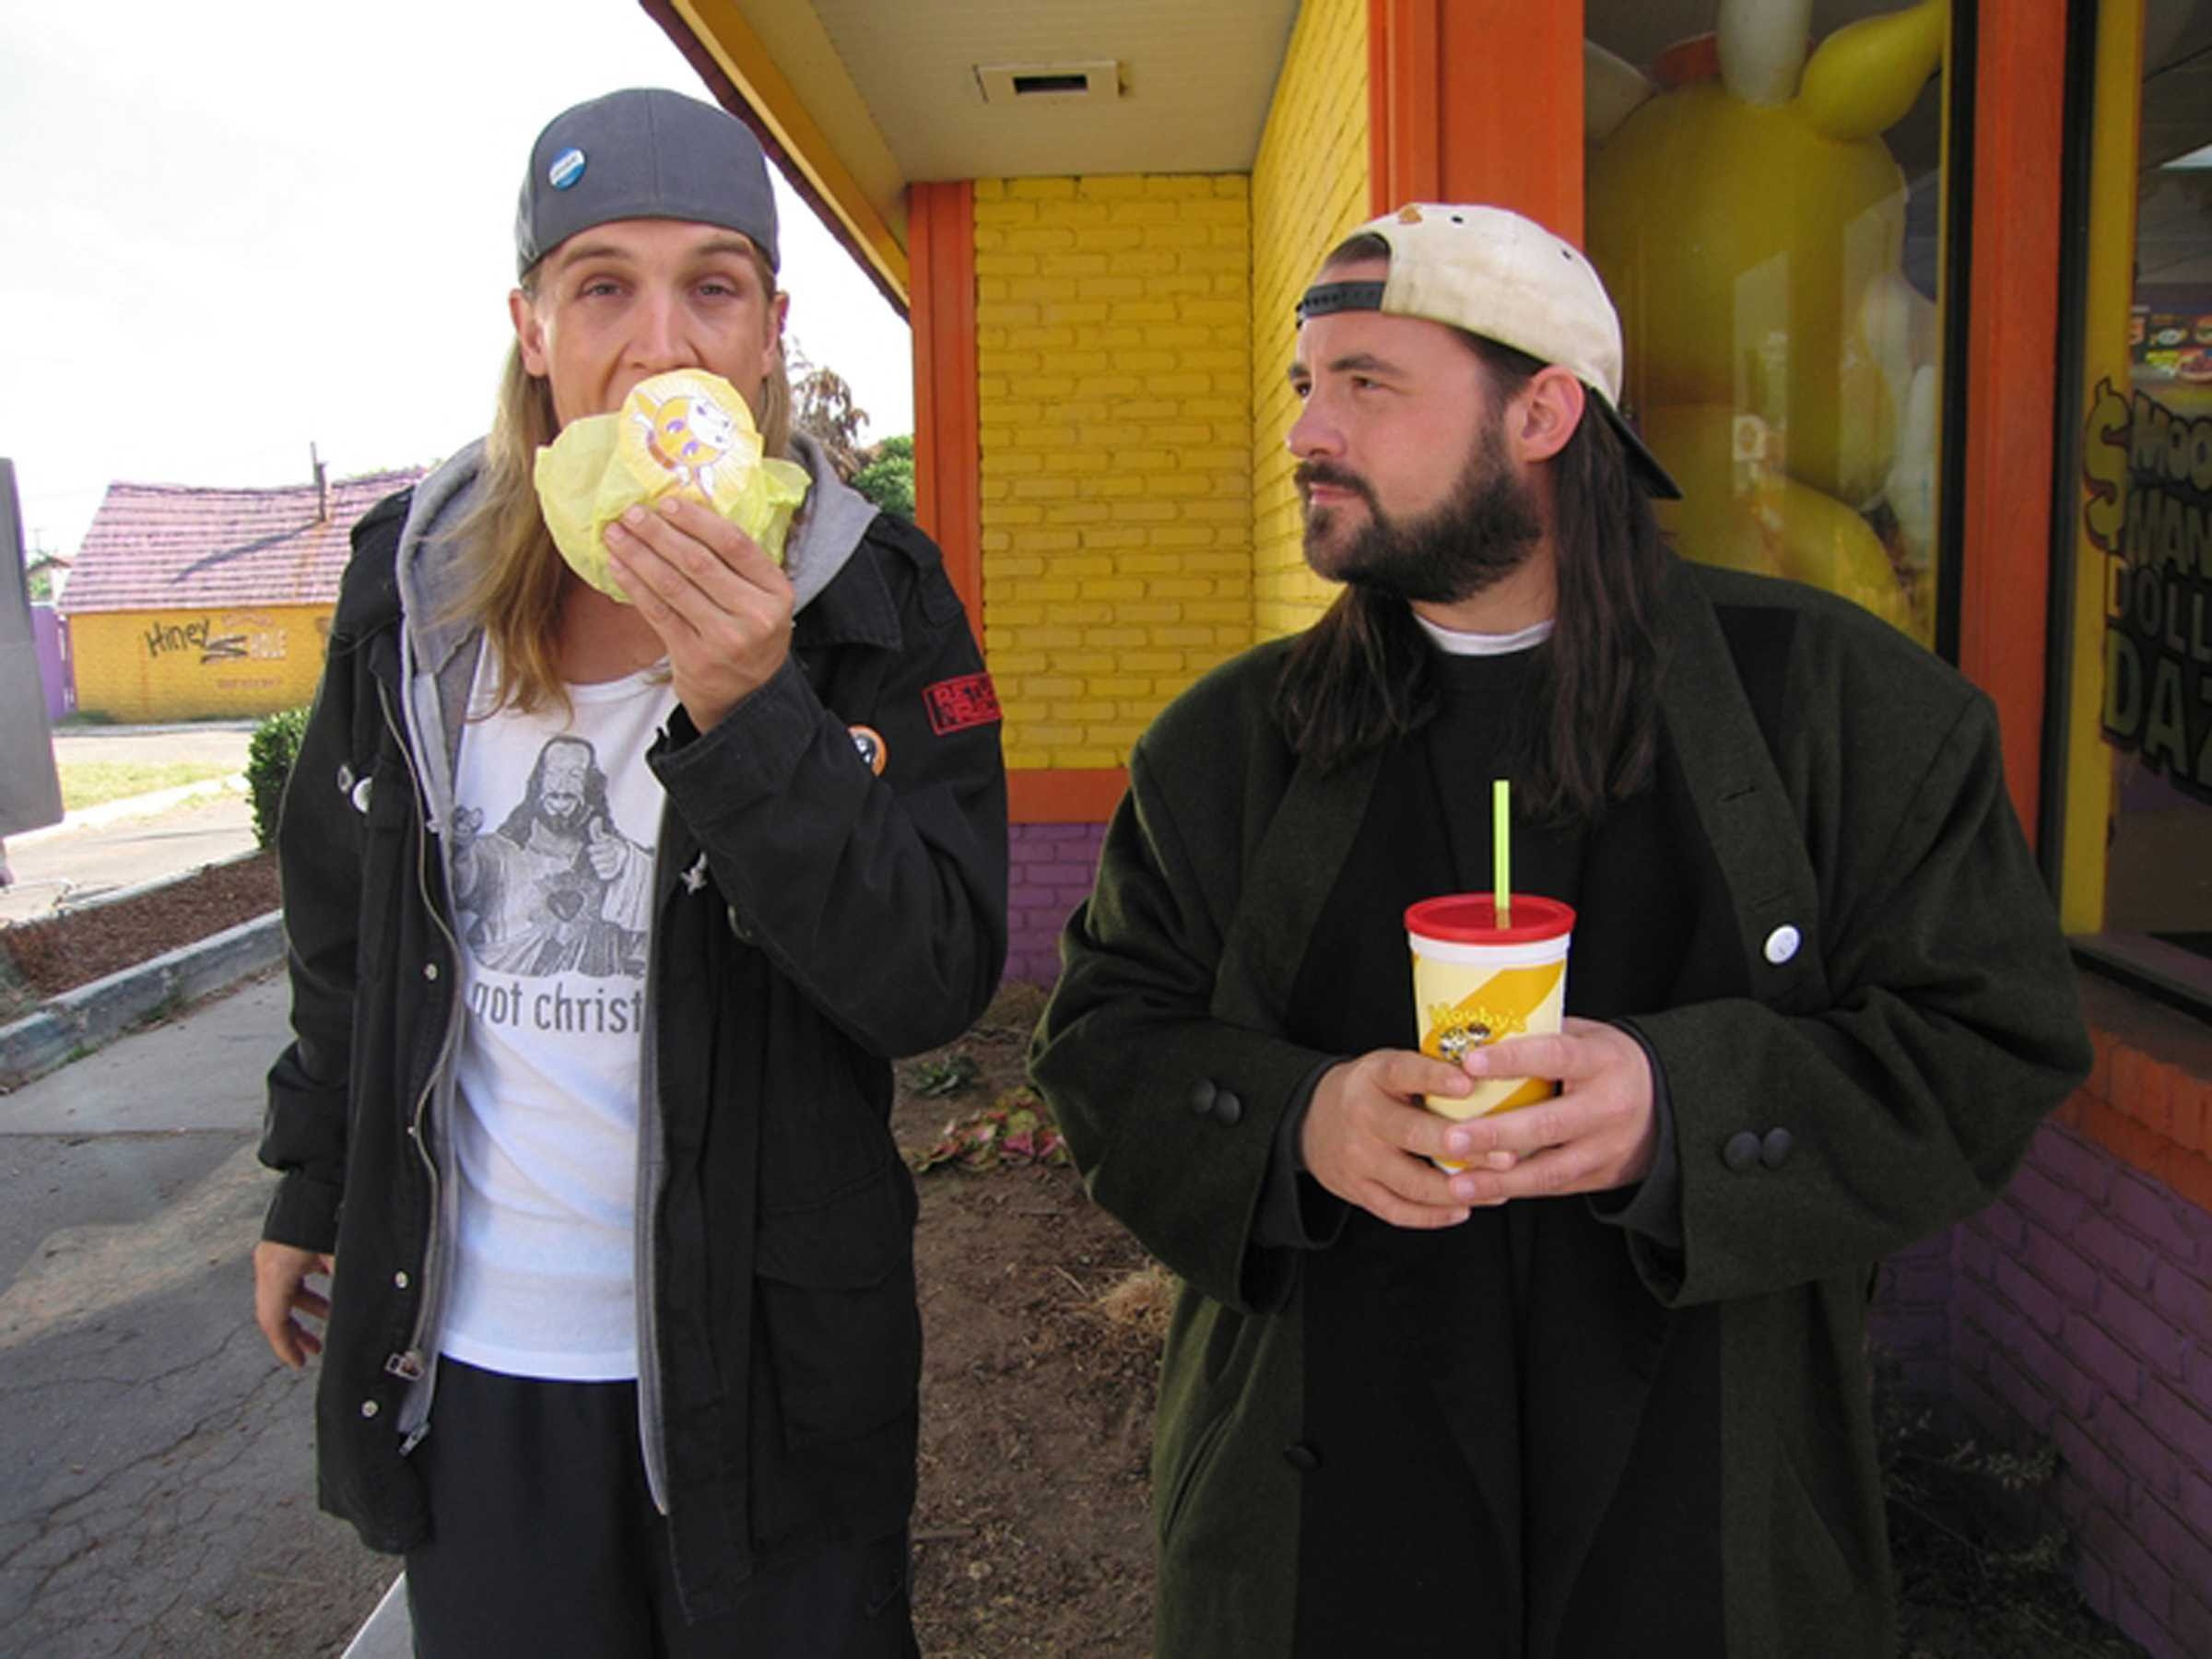 Jay And Silent Bob Kevin Smith Jason Mewes 2400x1800 Wallpaper